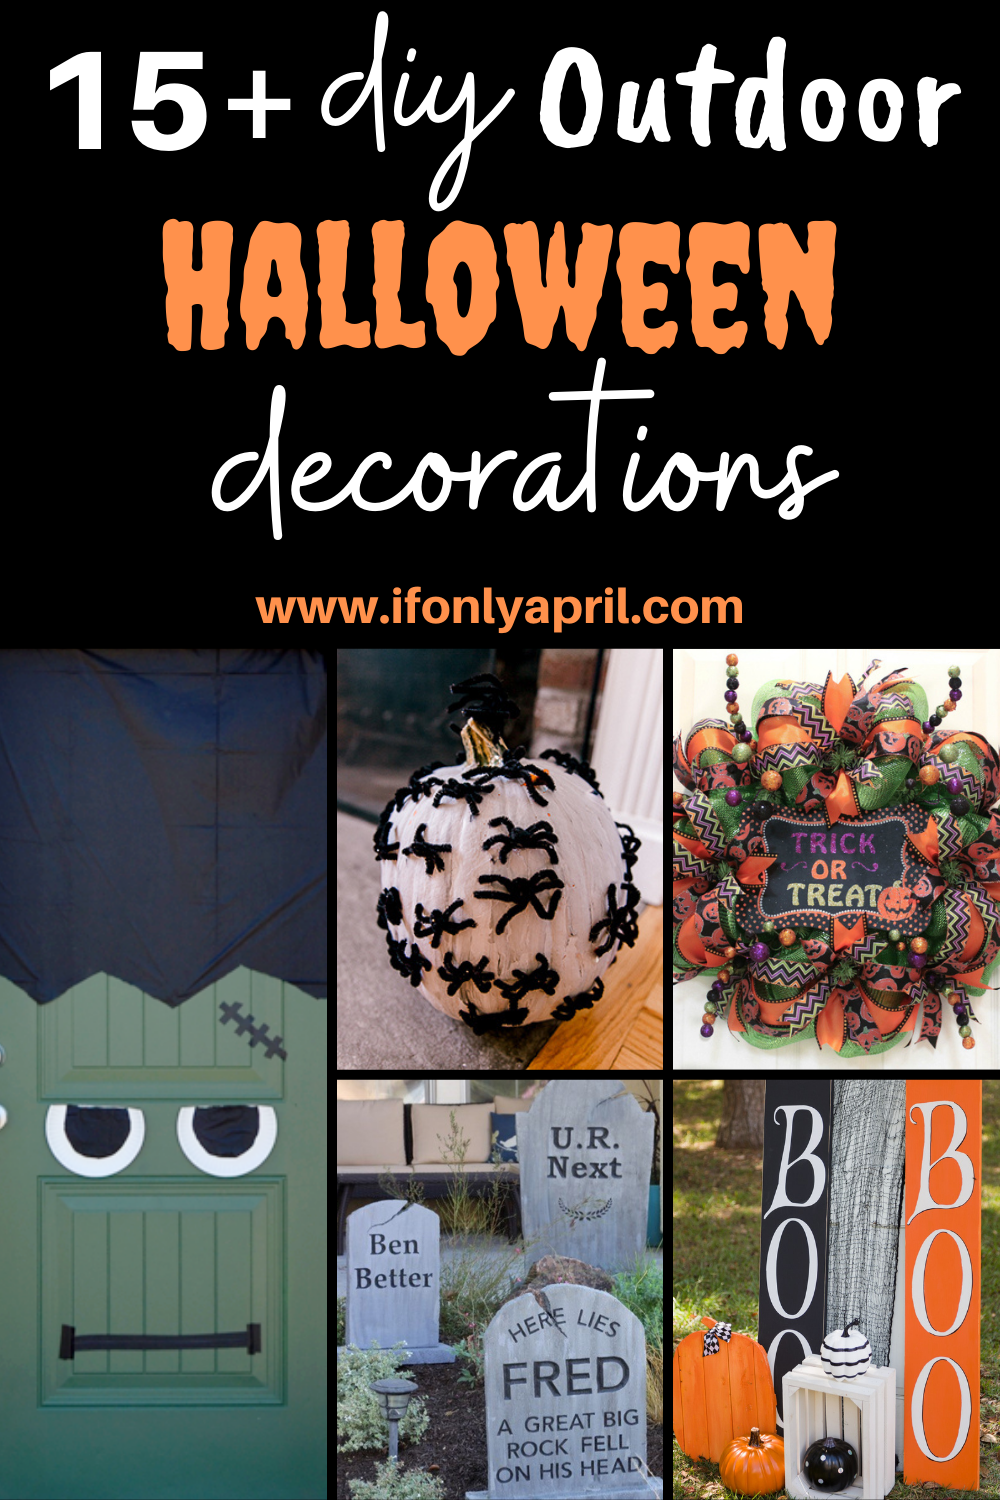 15+ diy outdoor halloween decorations